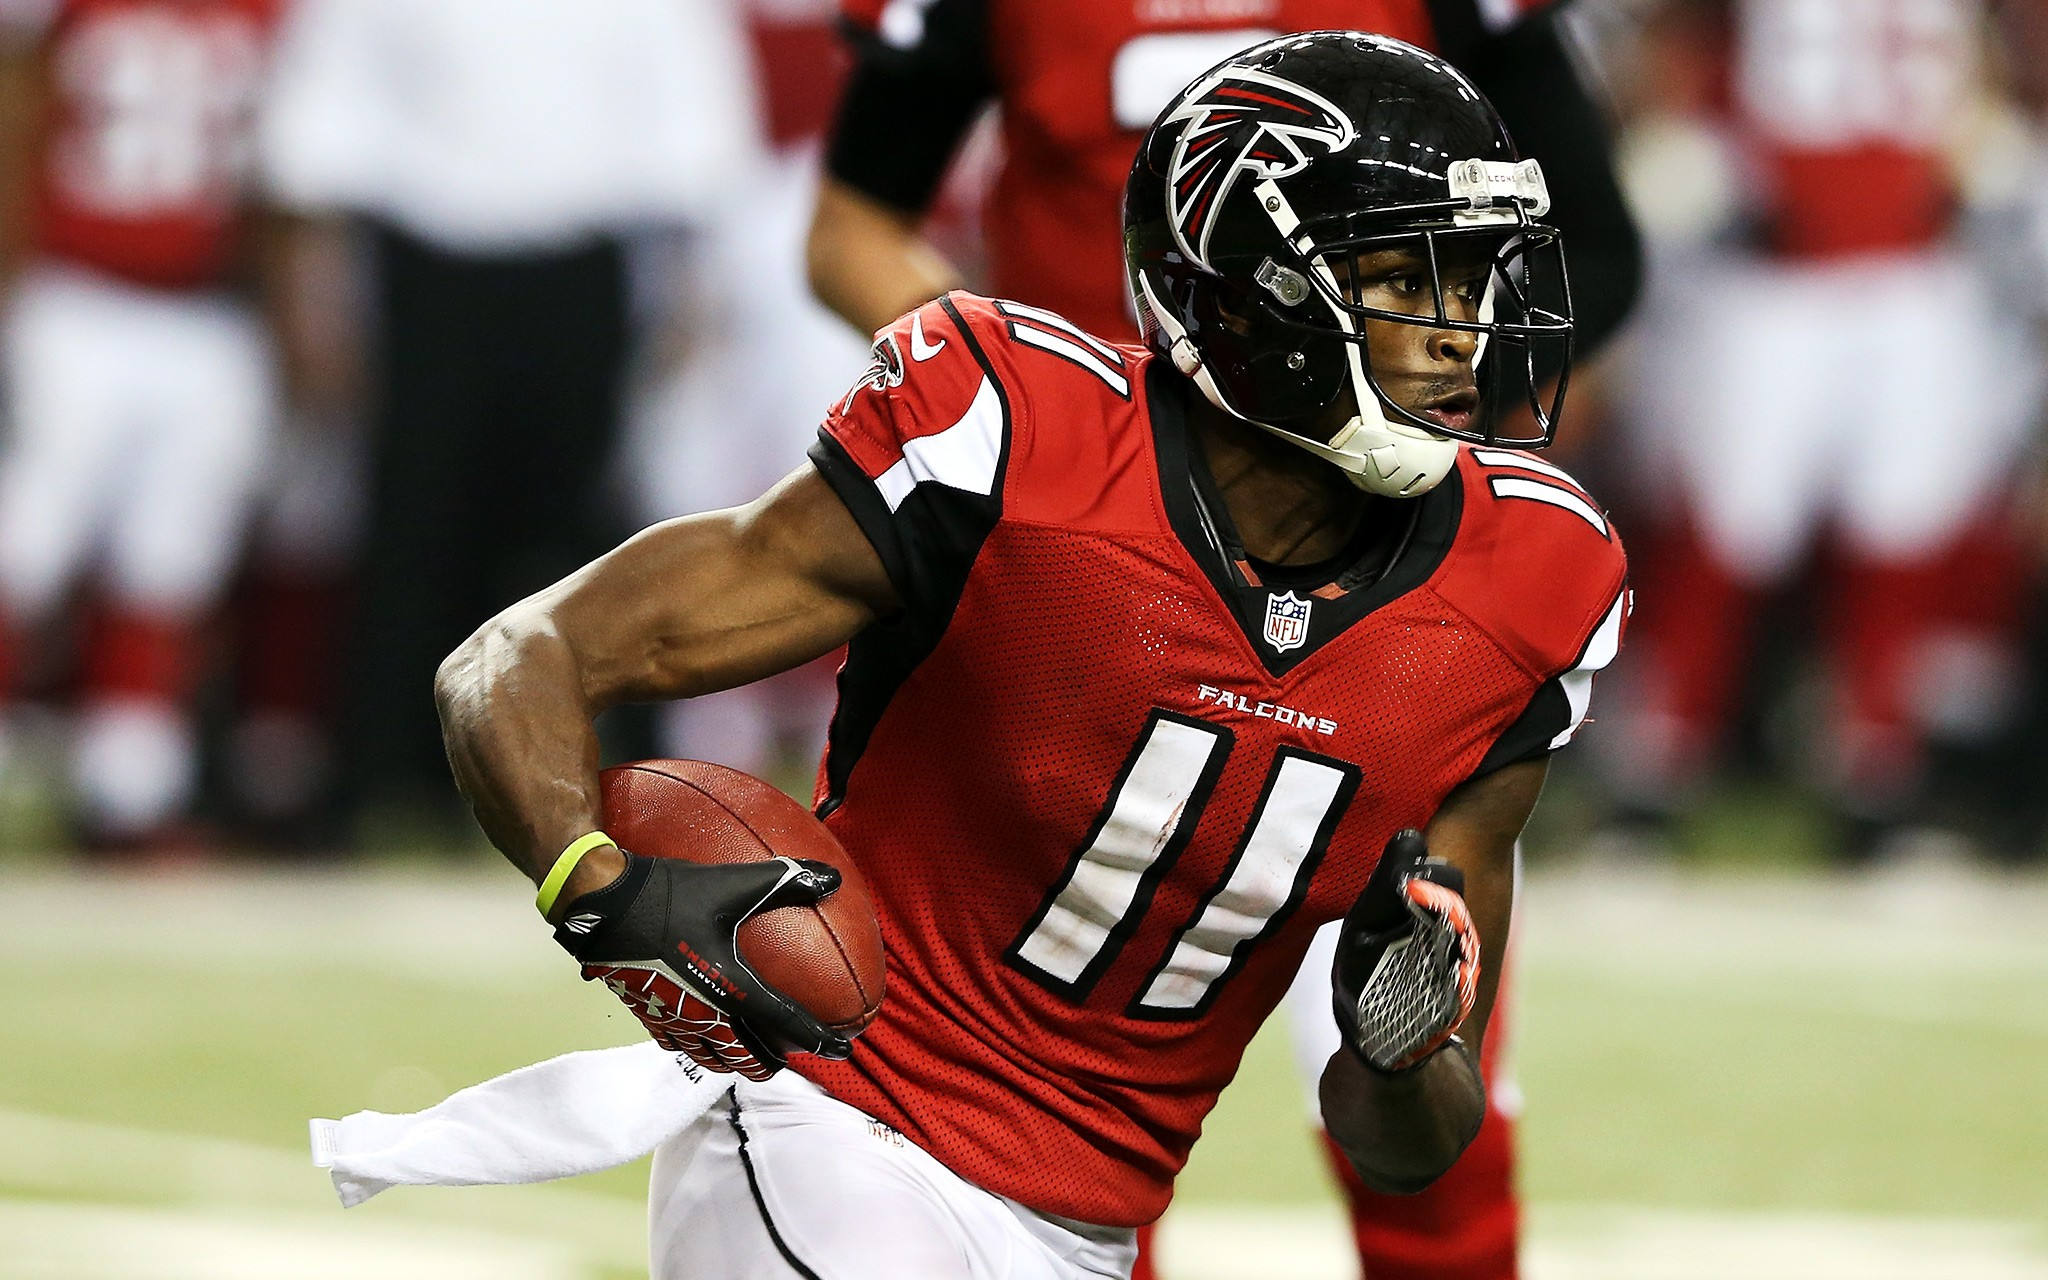 Julio Jones falcons top 10